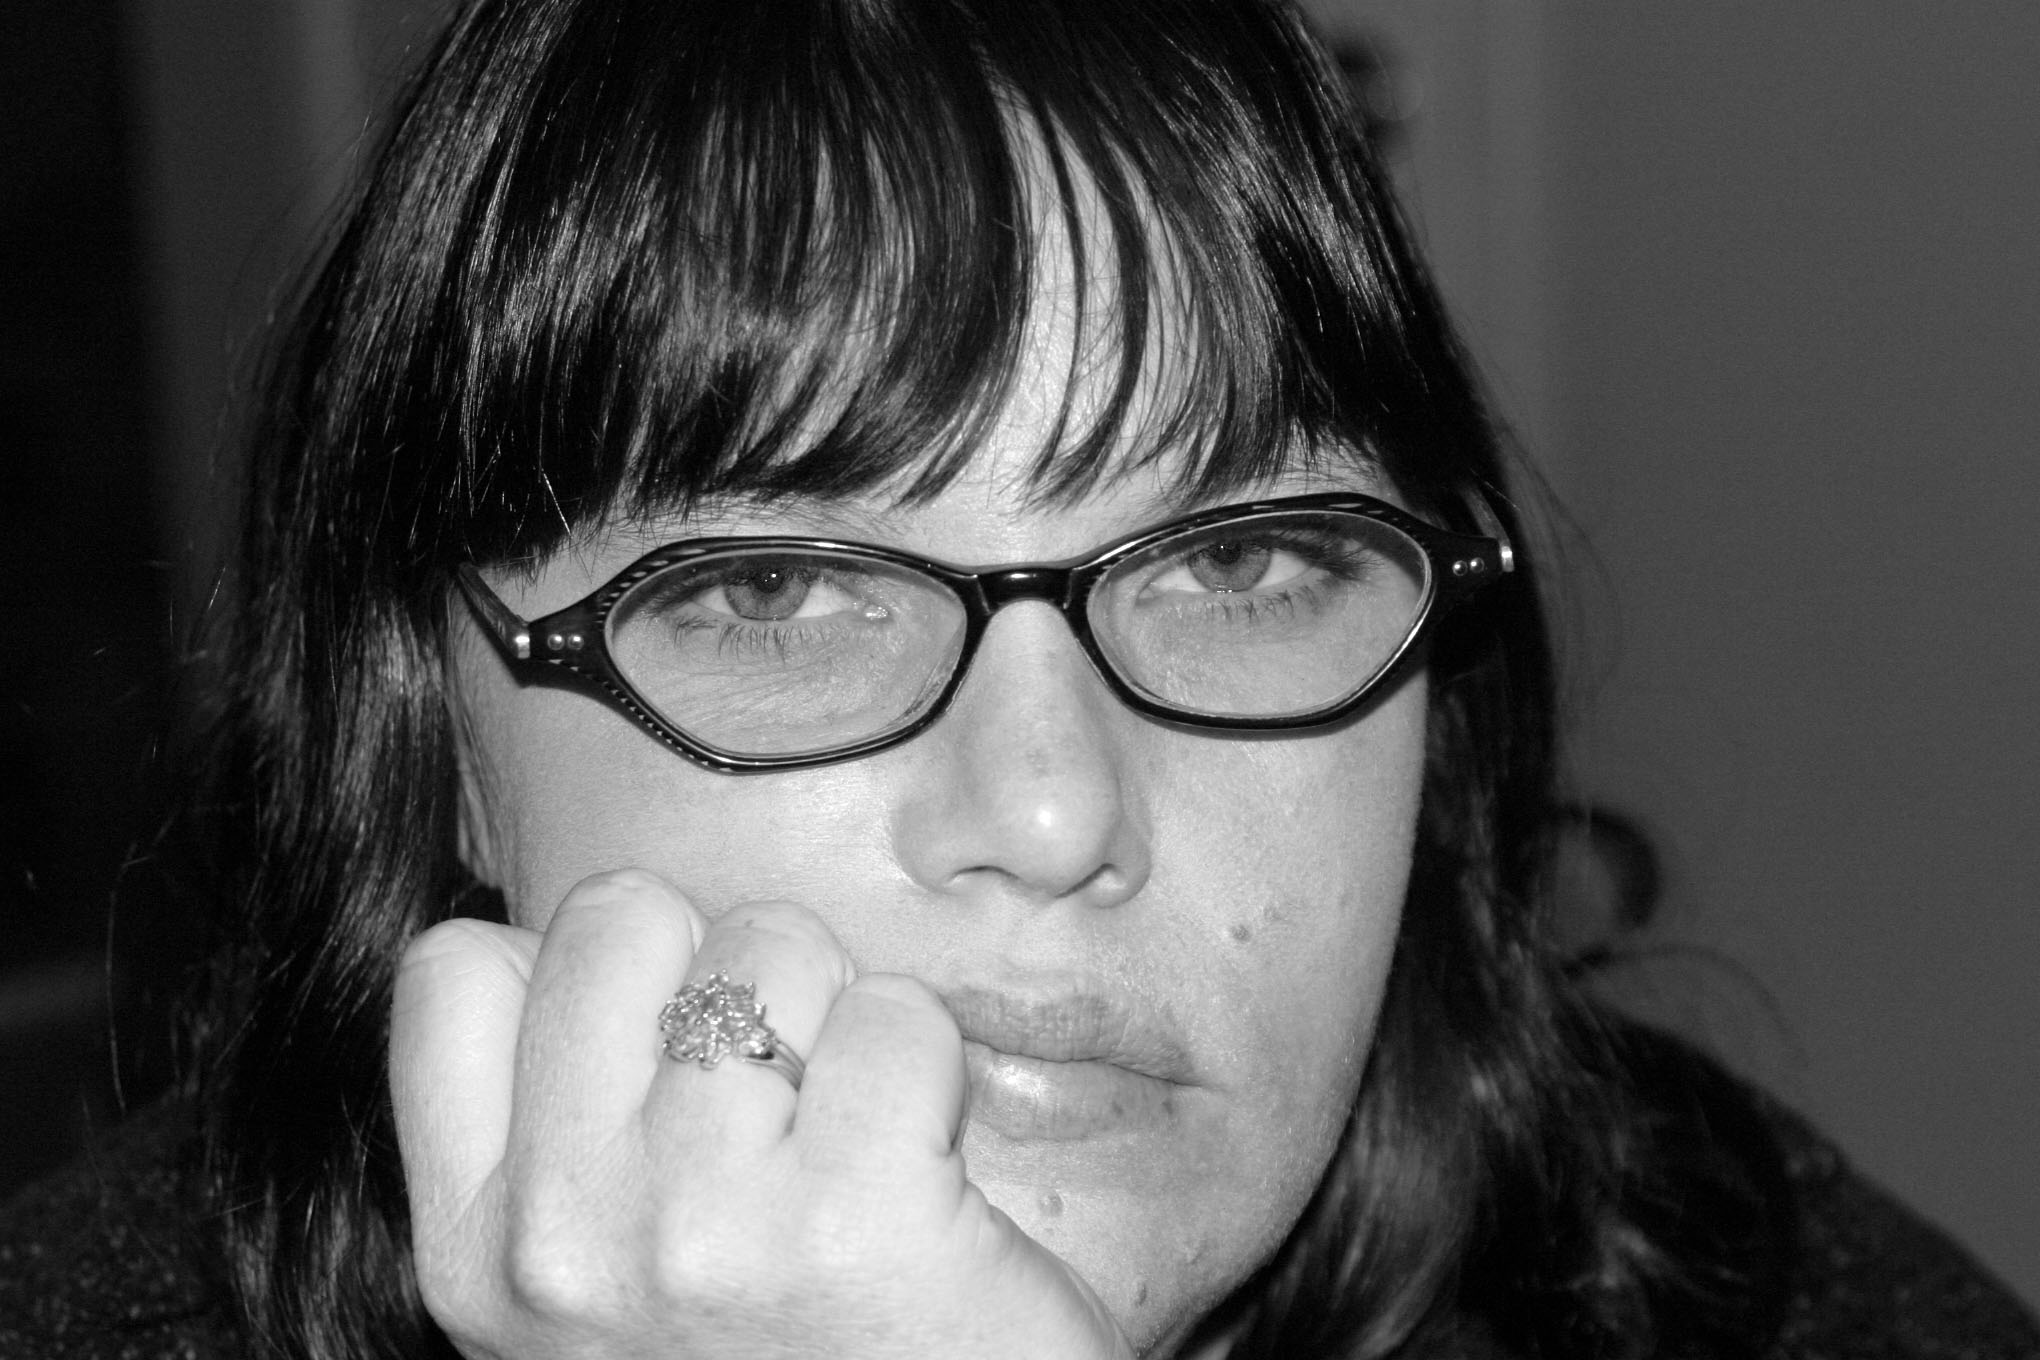 Photograph of a woman with her chin resting on her hand looking very bored.